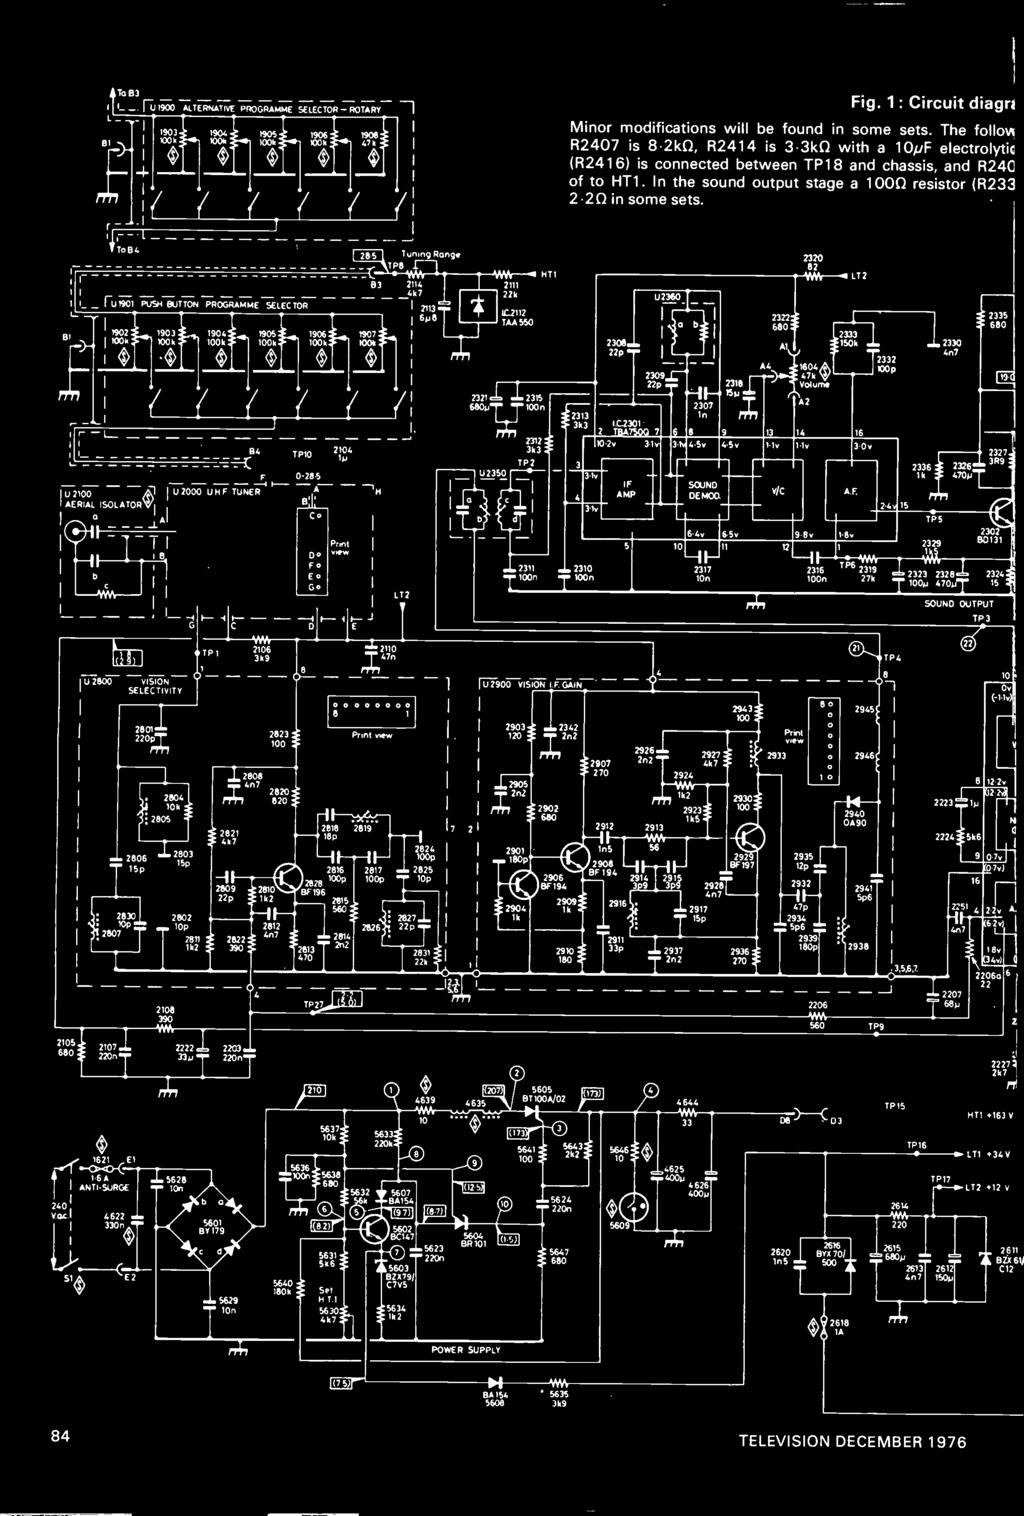 Iell 45p December 1976 Mentsminiature Vhf Aerials Speaker Protection Circuit 2pcb Schematic Delay 1 To B3 4 Fu1900 Alternative Programme Selector Rotary 1903s 1904 1905s